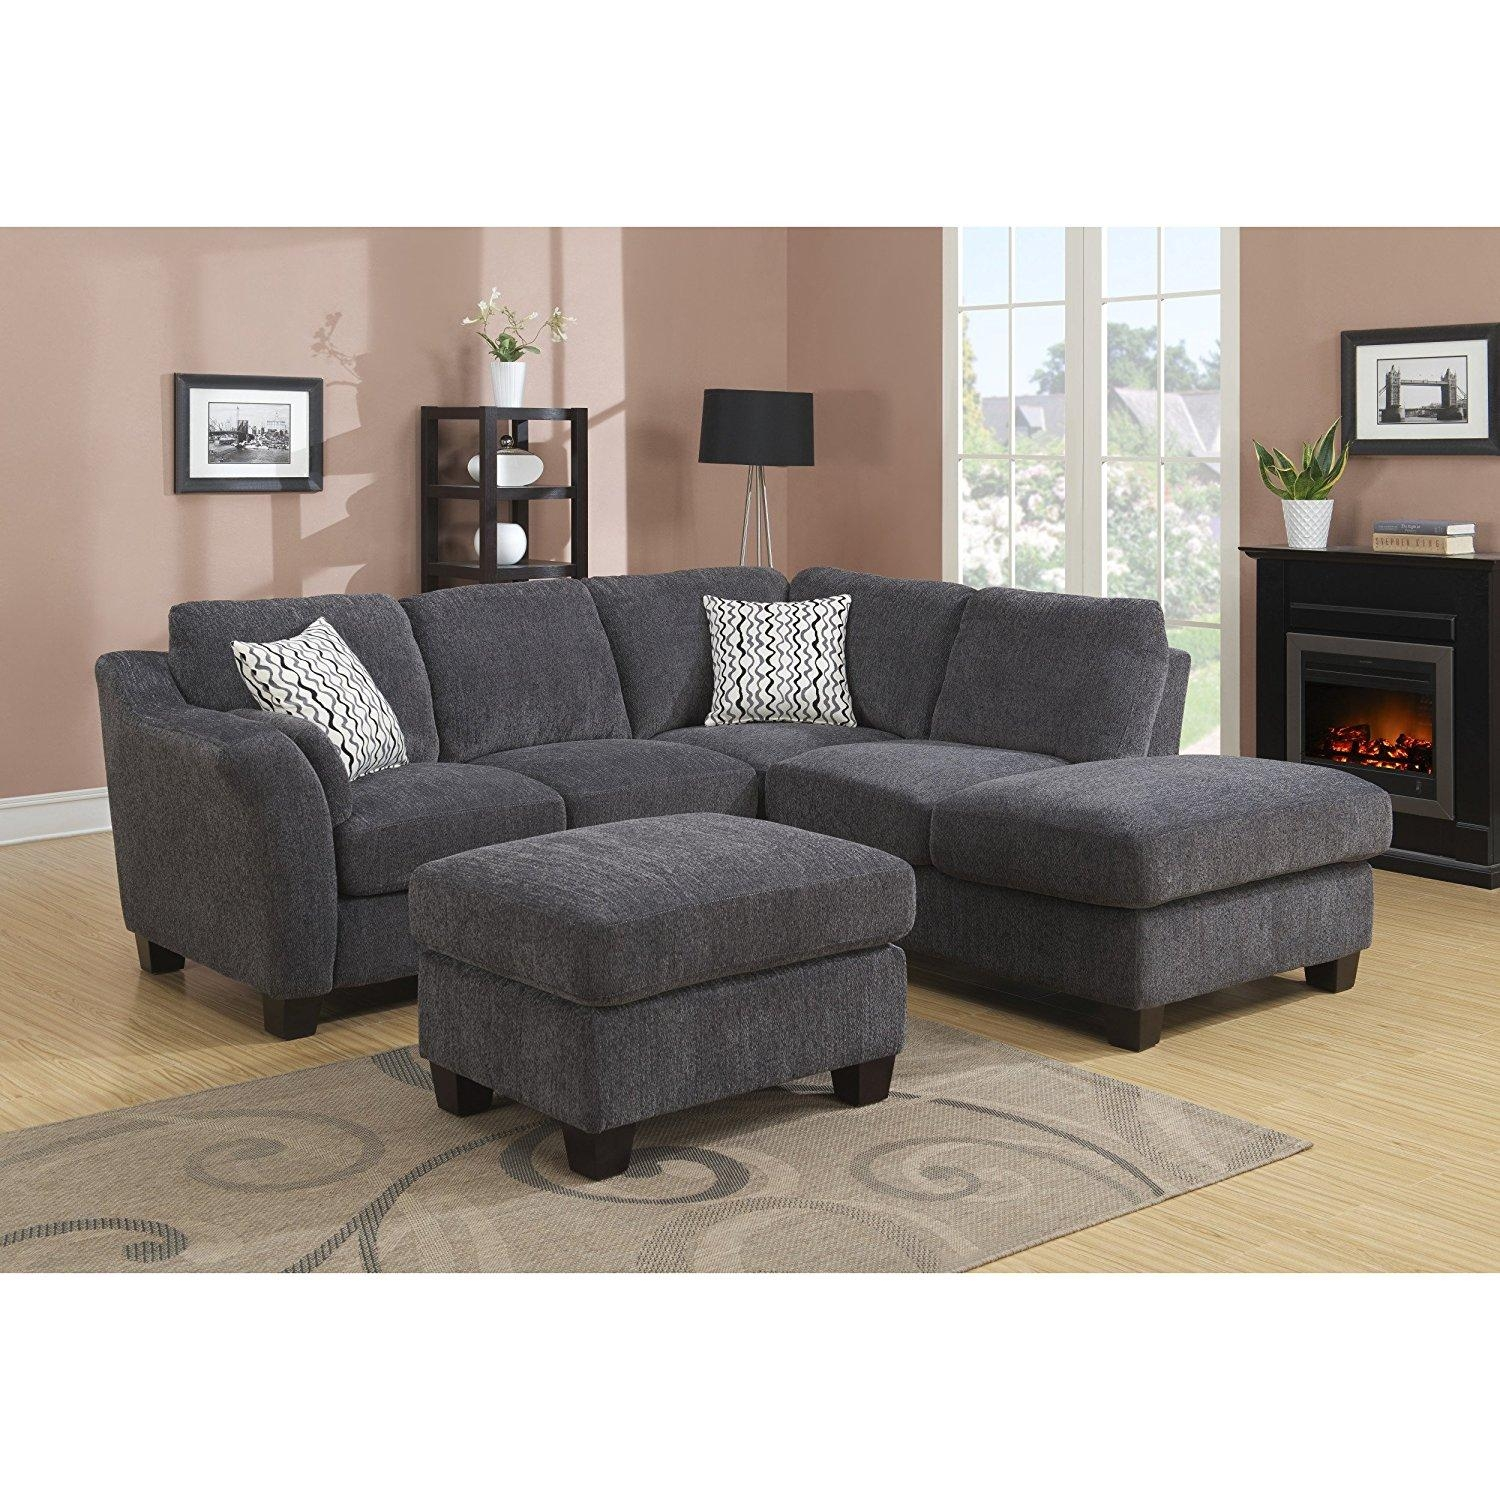 Furniture: Leather Grey Sectional Costco With Gray Rug And Wall Inside Costco Wall Art (Image 12 of 20)